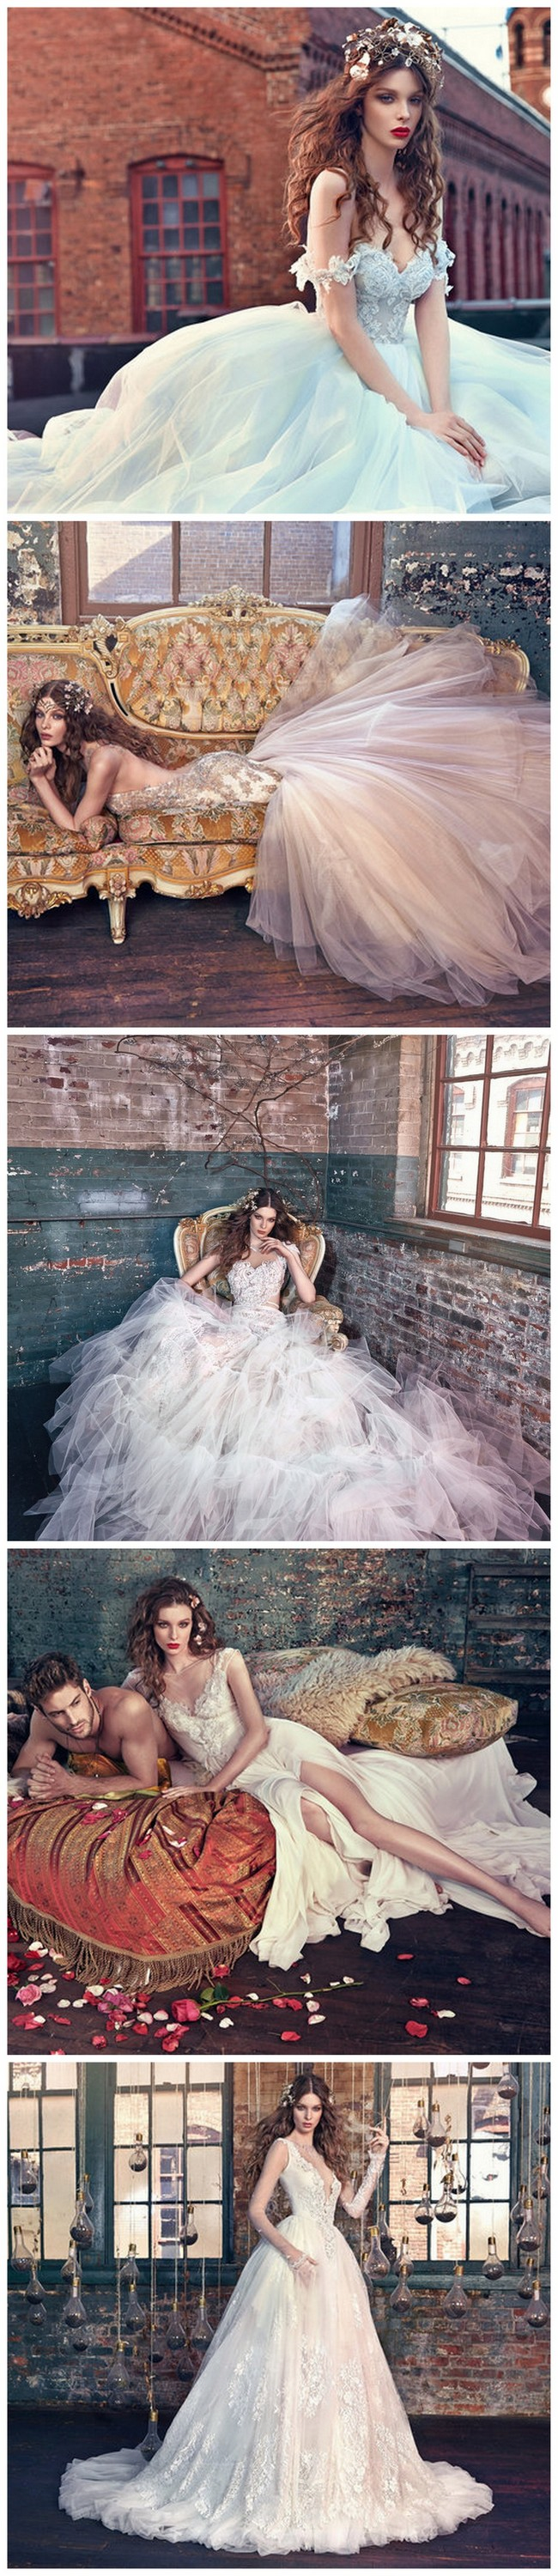 Fairy Tale Wedding Dresses http://www.confettidaydreams.com/fairy-tale-wedding-dresses/